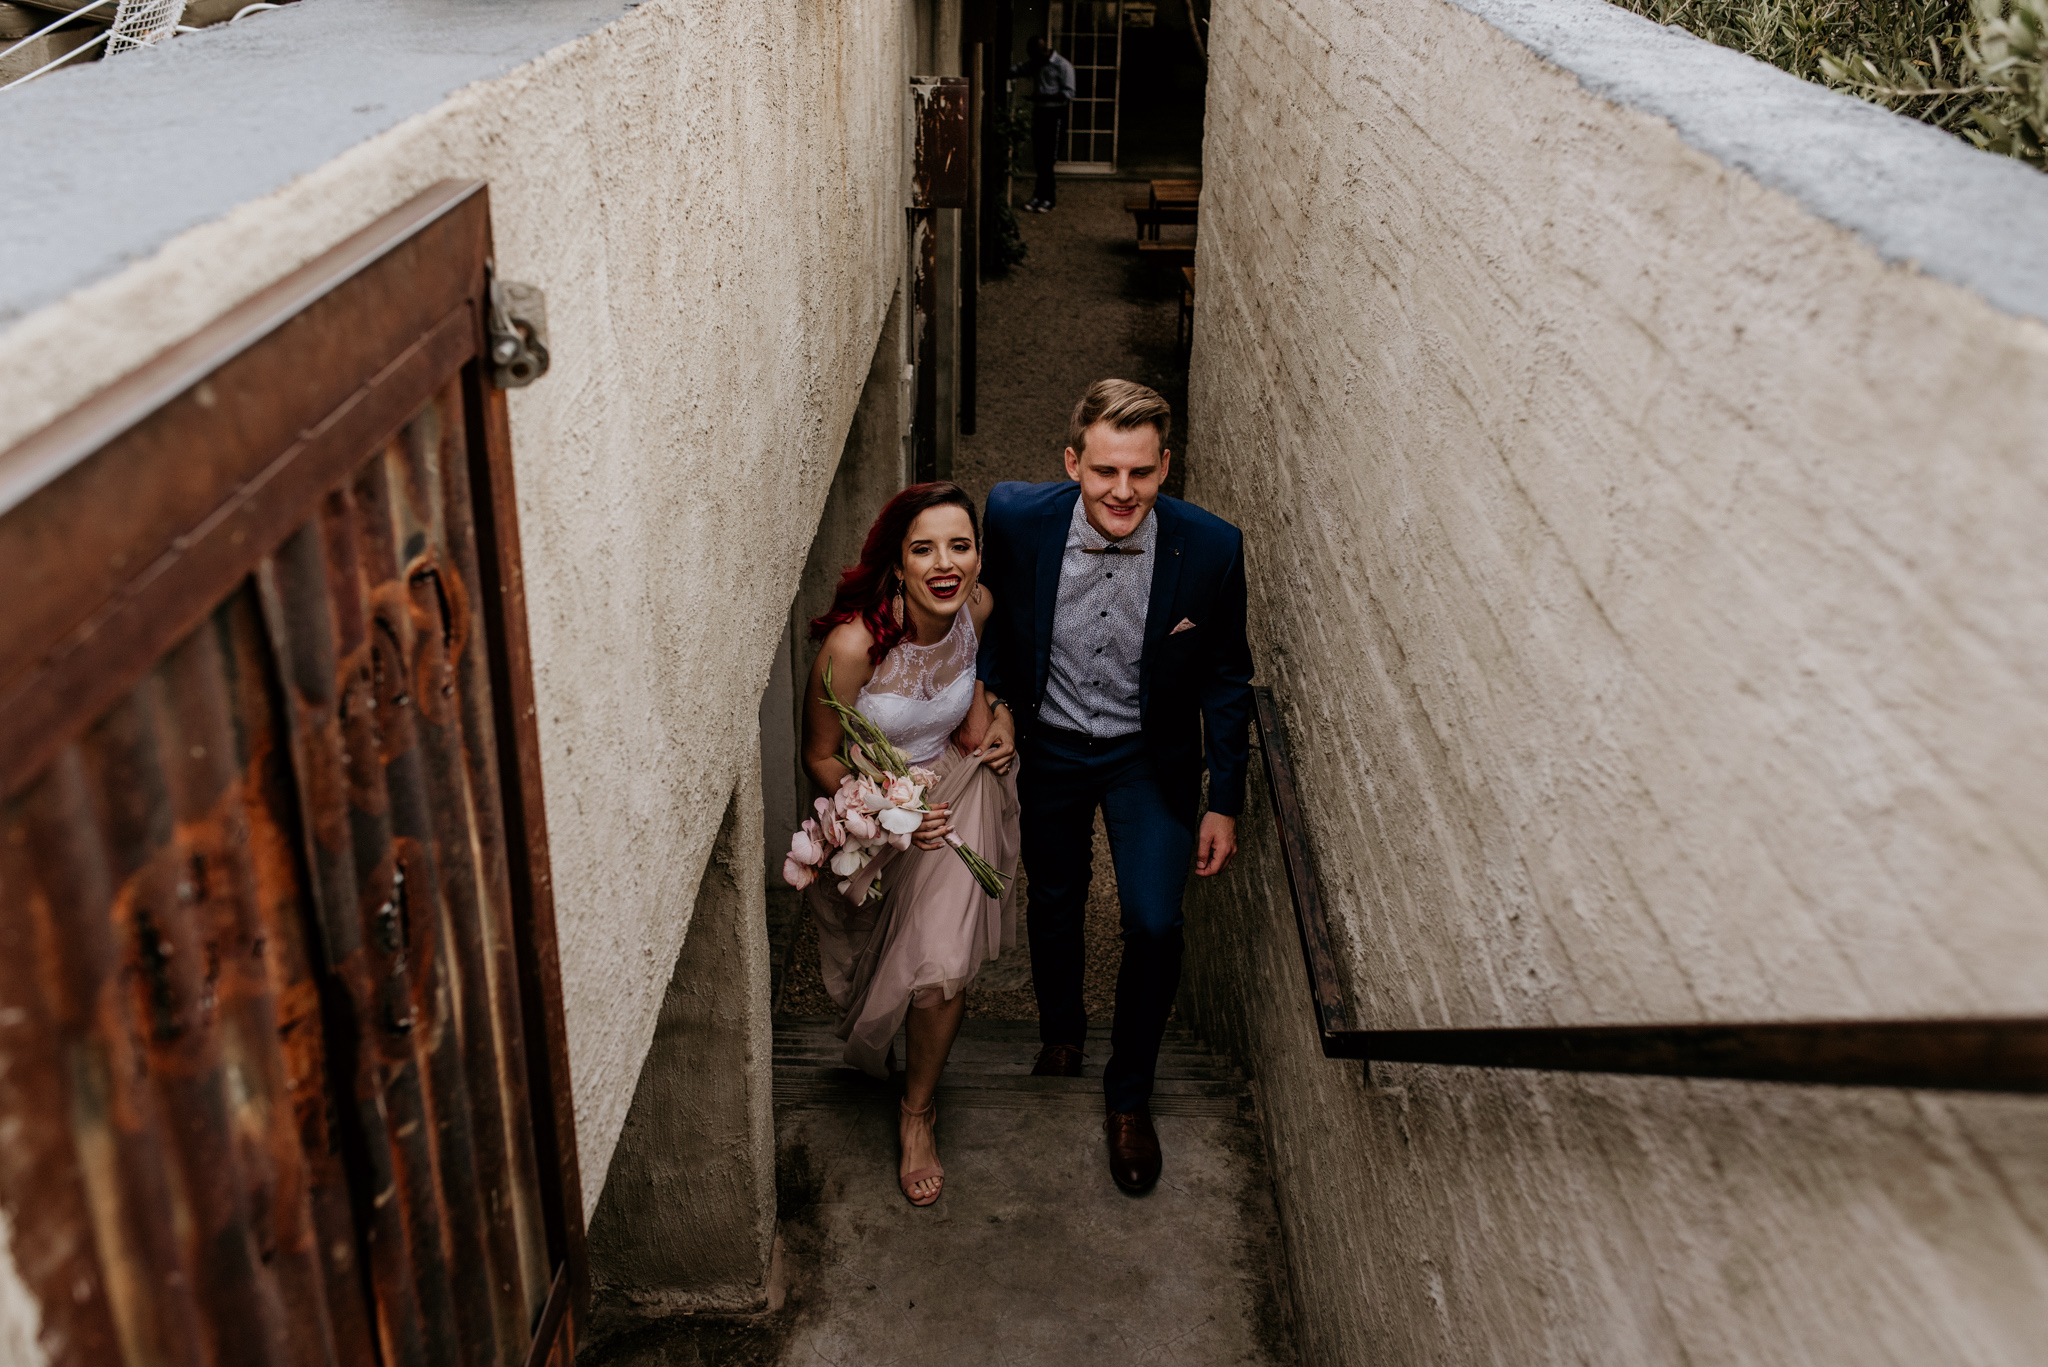 Bride and groom walk up stairs at Arts on Main in Johannesburg after their wedding